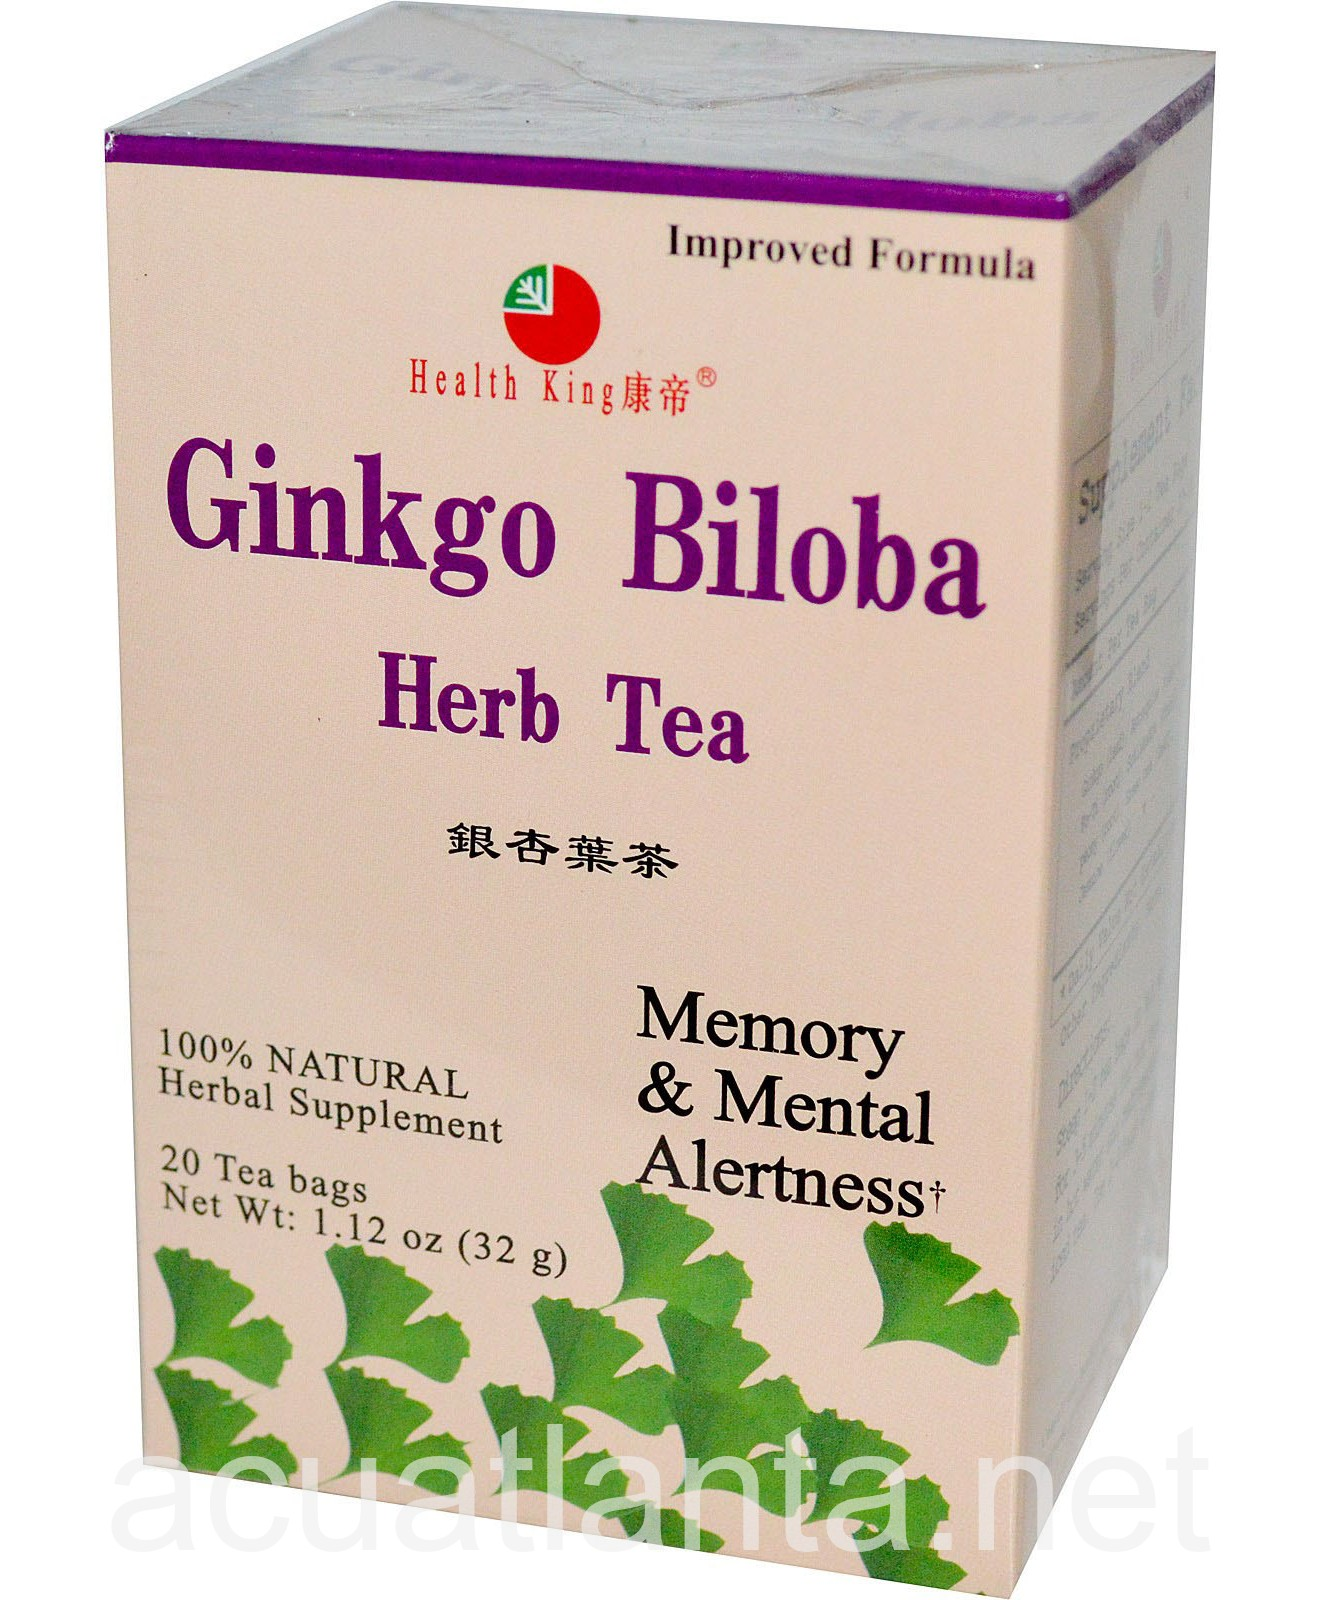 an examination of ginkgo biloba and other herbal products The investigation found supplements, including echinacea, ginseng, st john's wort,  the other bottles yielded no dna from the labeled herb.